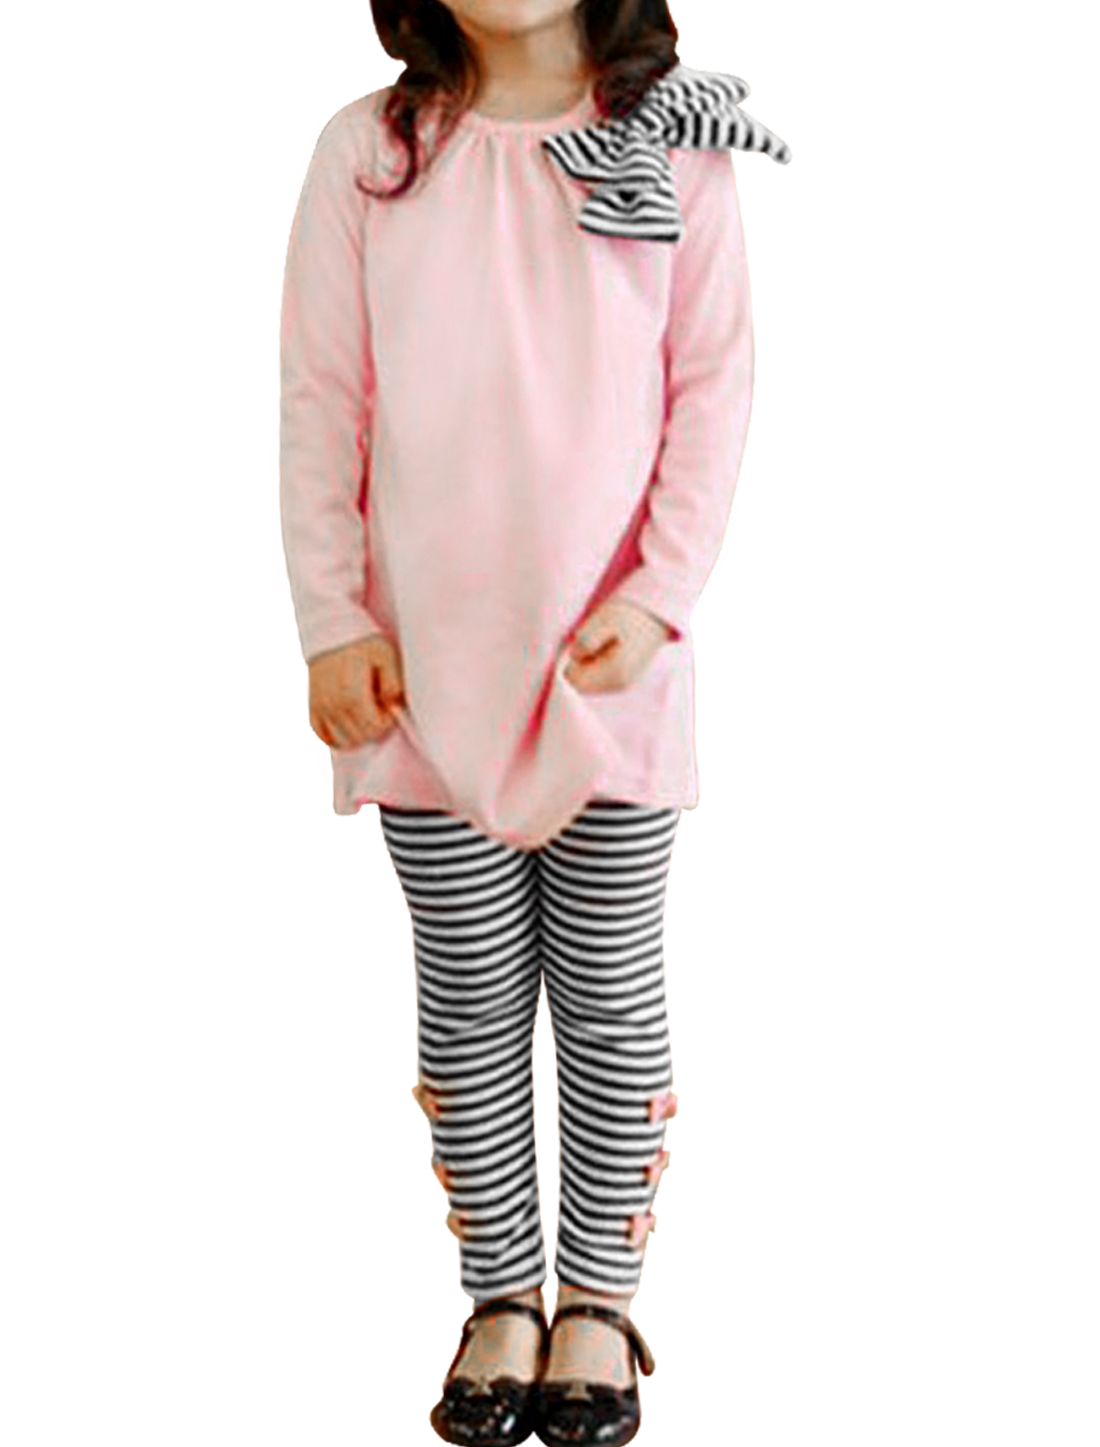 Girls Pullover Bowknot Shirt & Stripes Pants Pink Black 3T